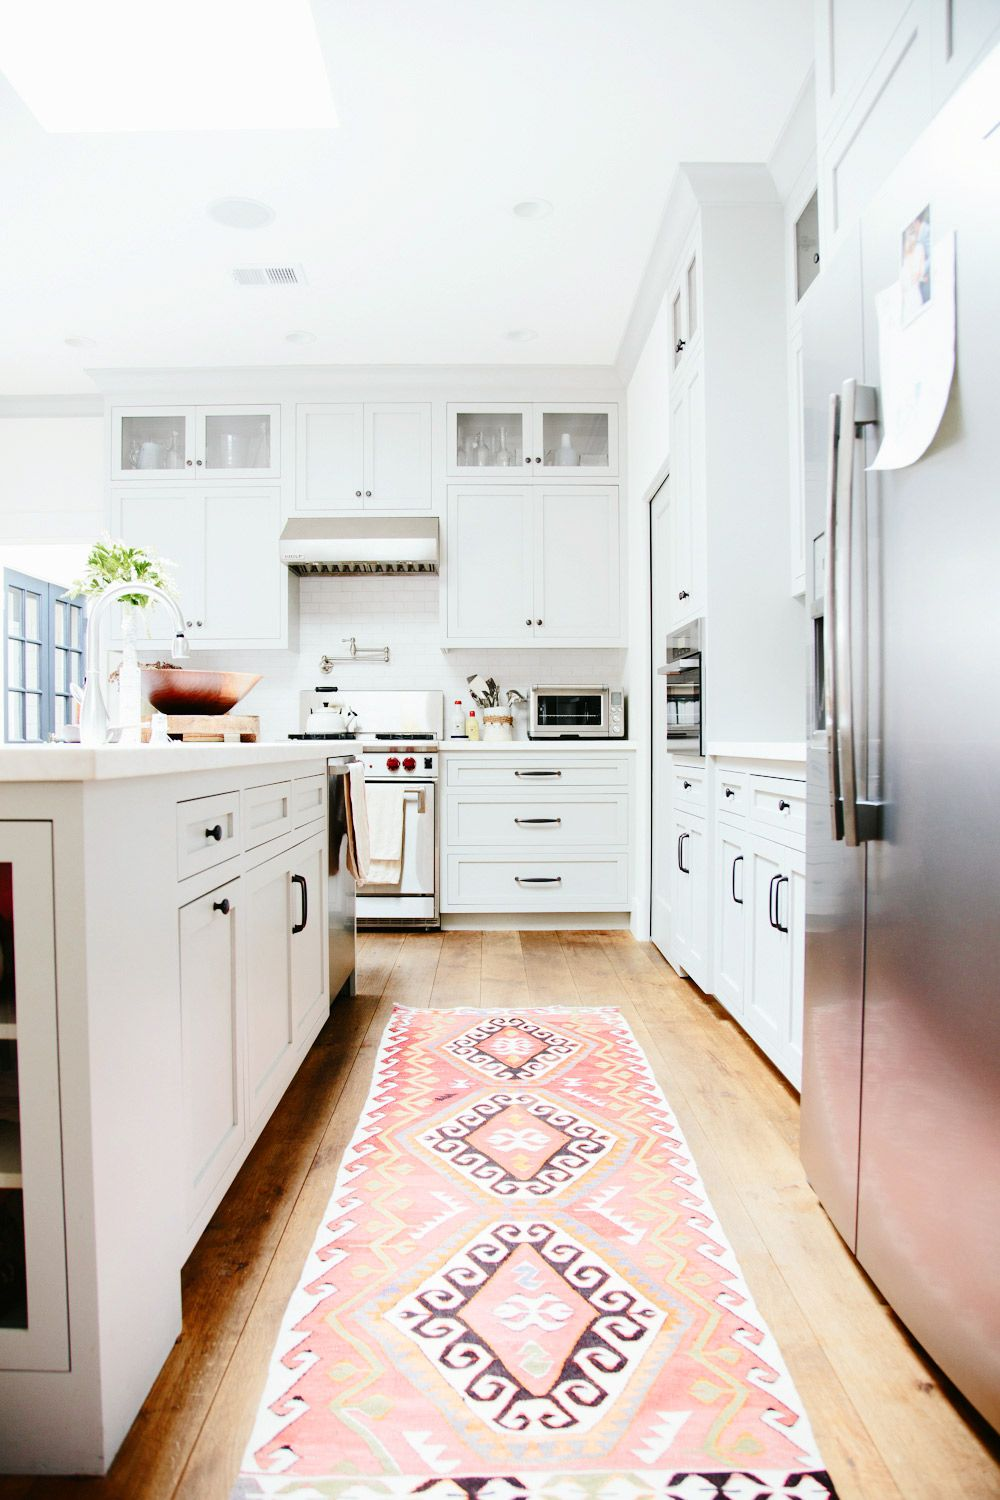 Vintage Persian Kilim & Turkish Rugs In The Kitchen  Light Wood Interesting Kitchen Rug Design Ideas